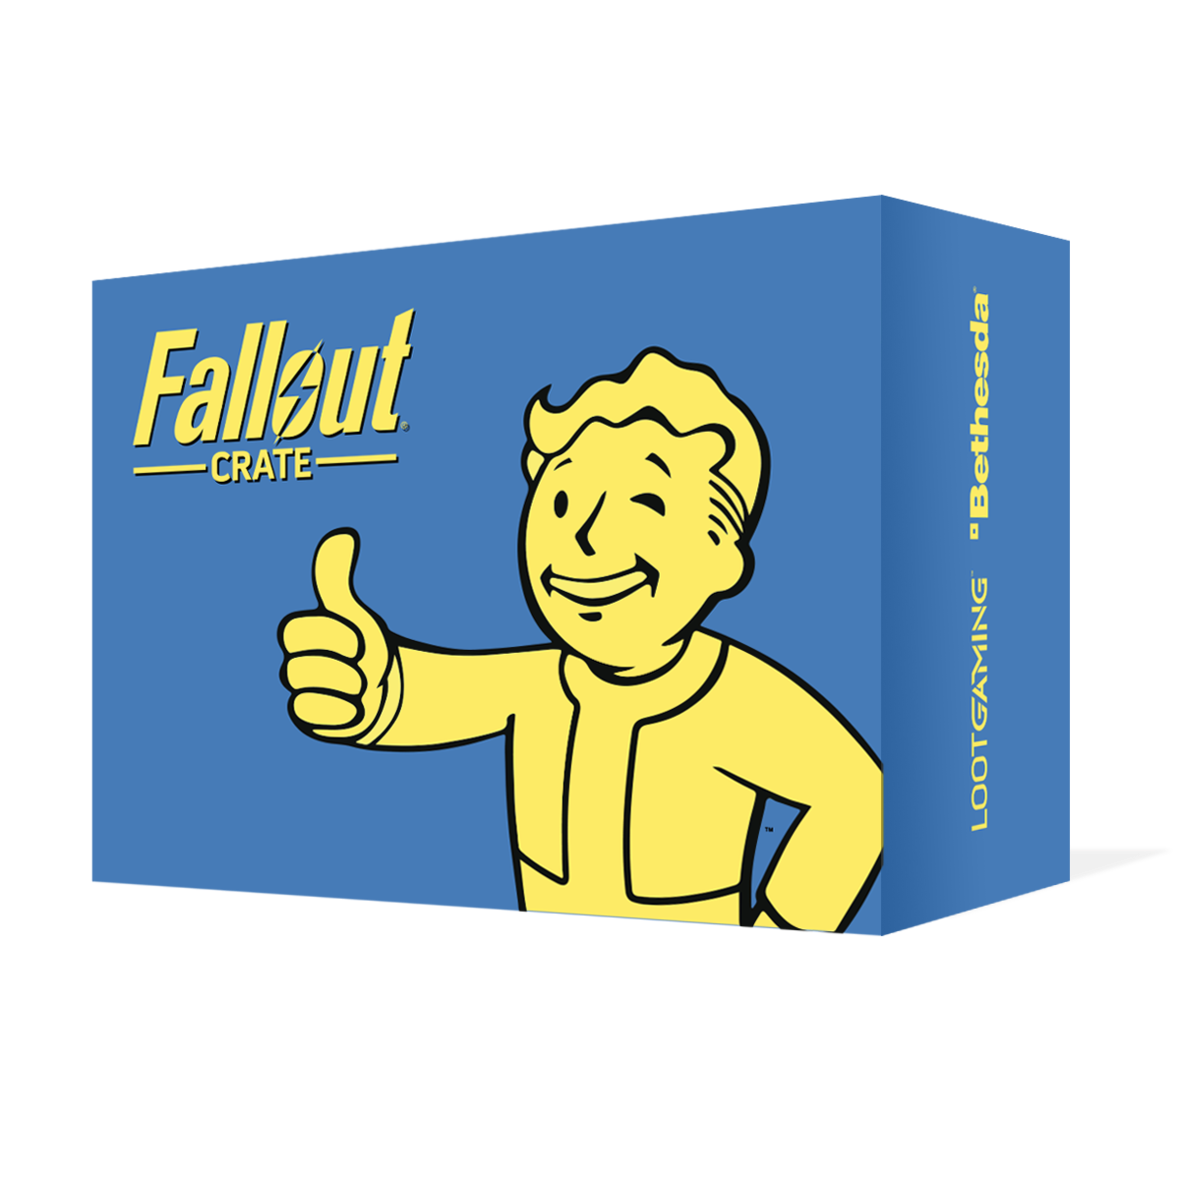 Stupid loot crate items png image. Fallout is getting its